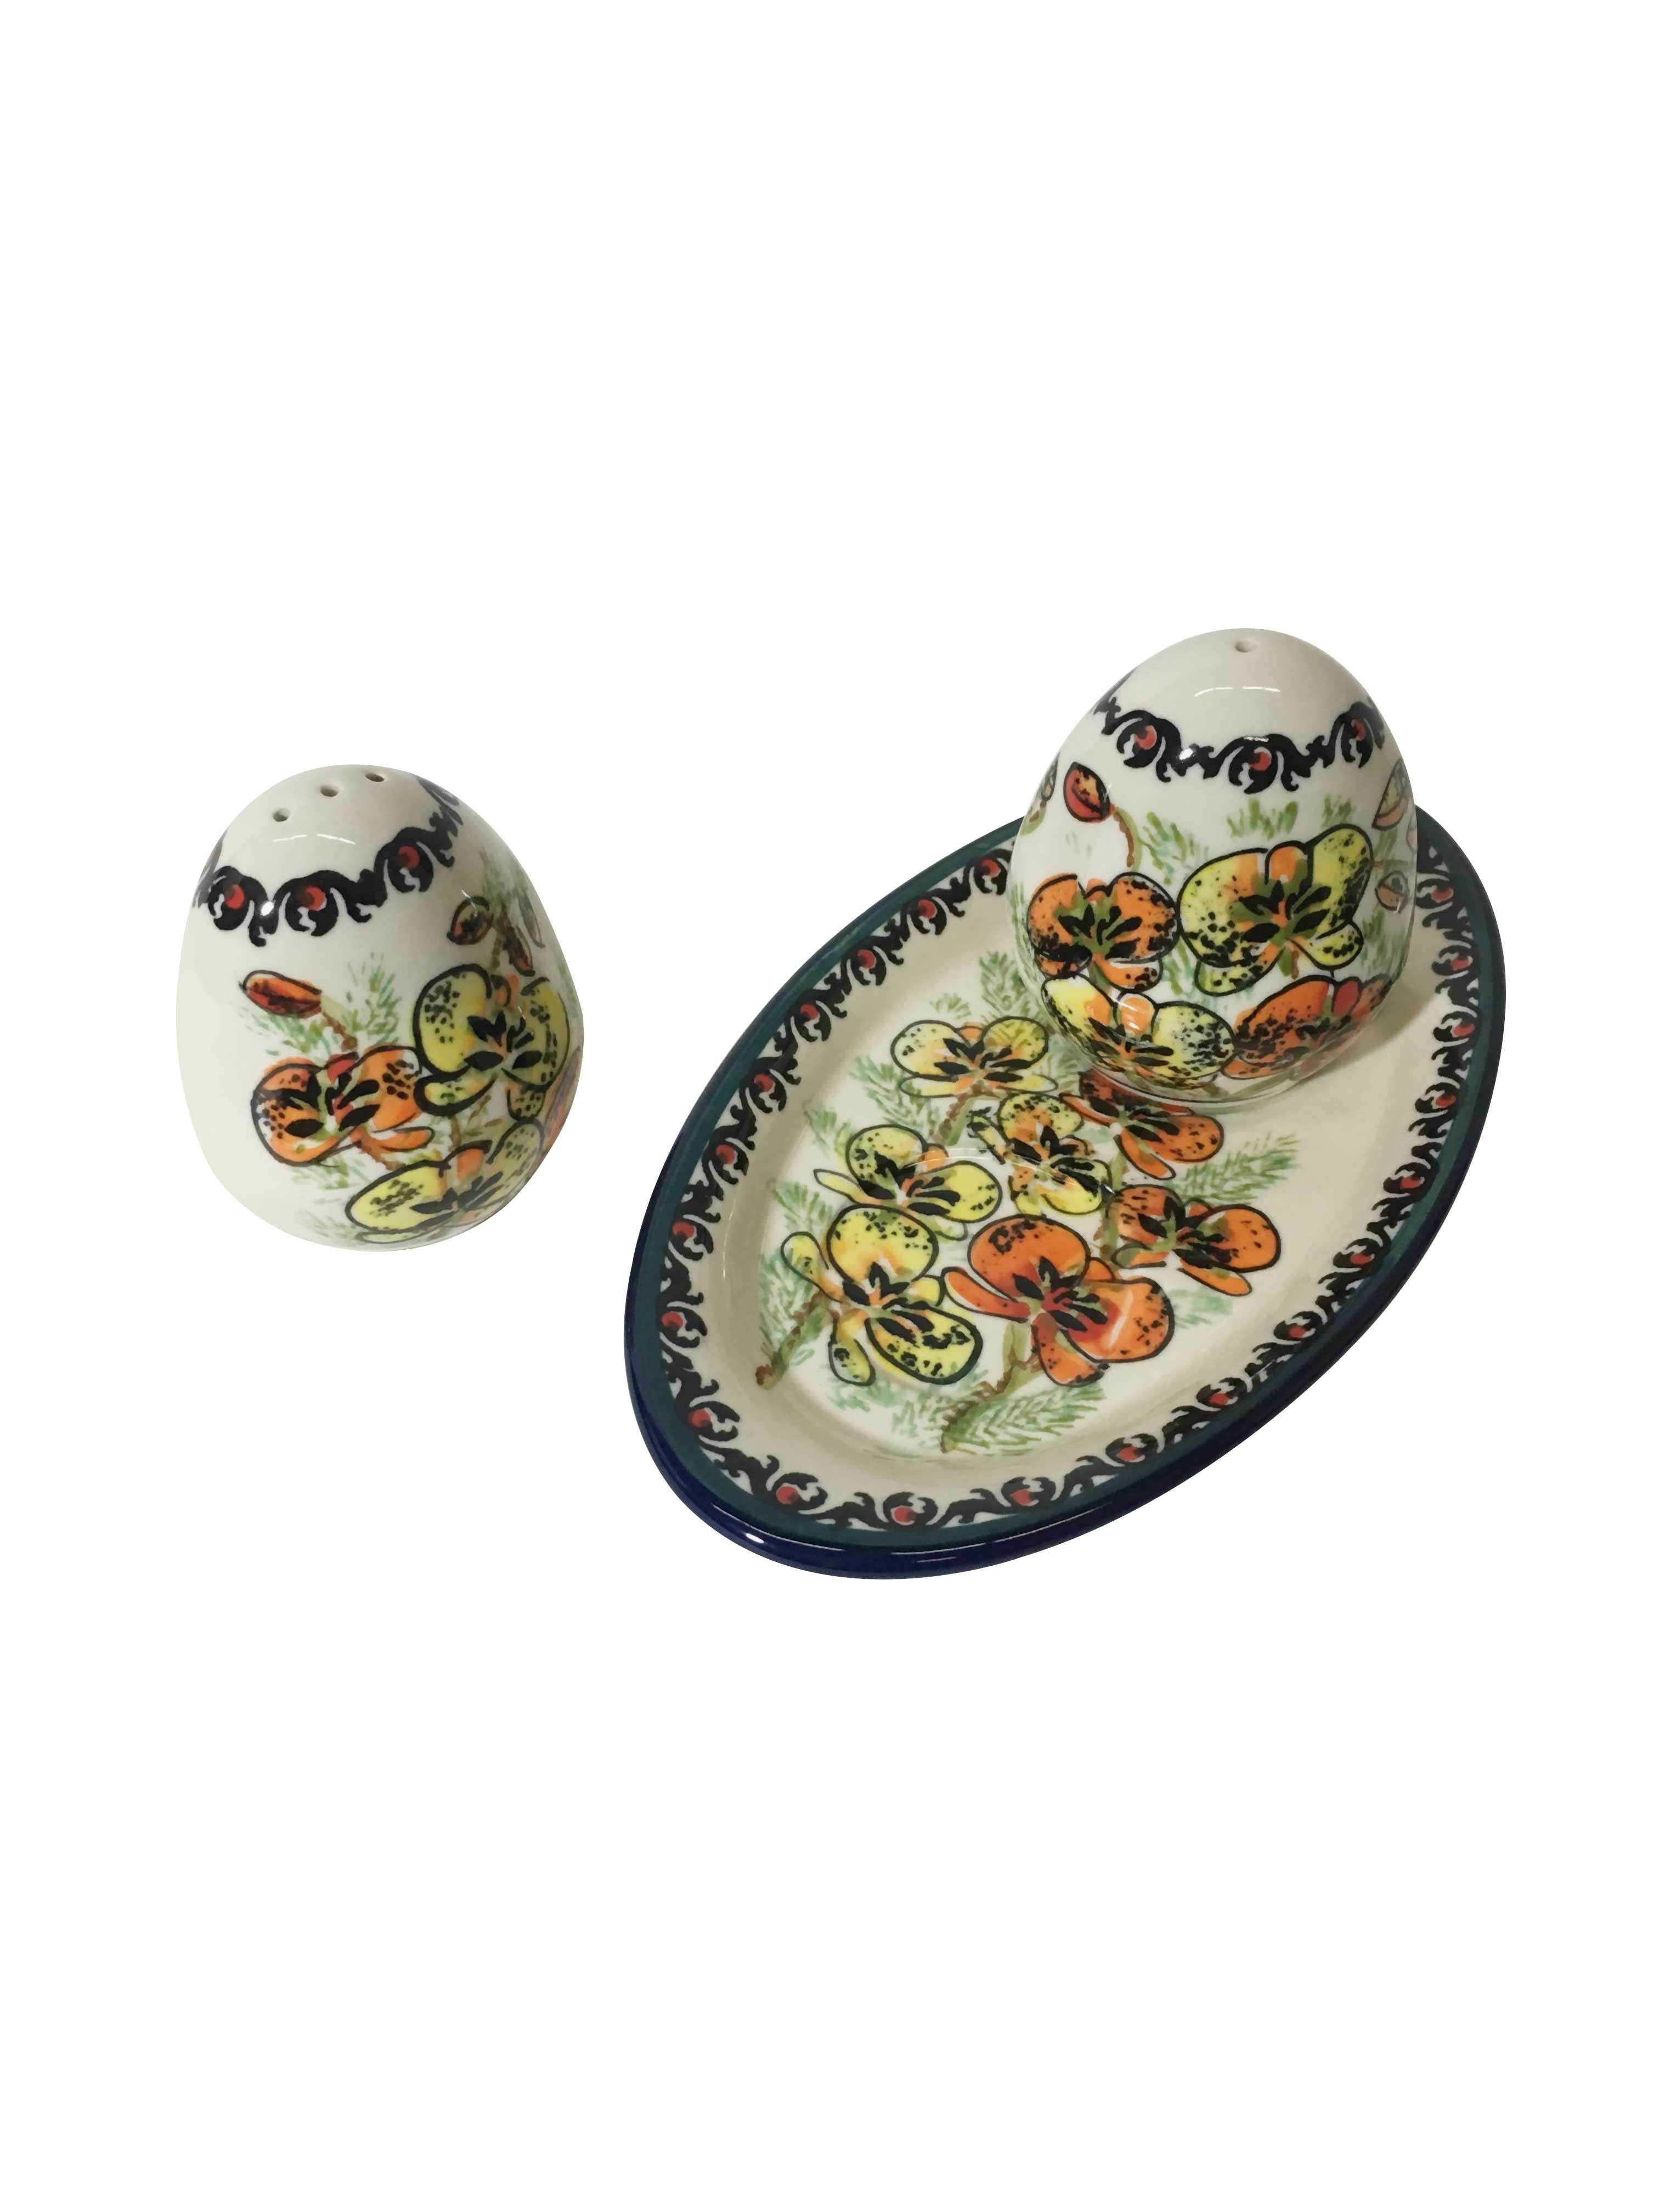 Pottery Avenue Orchid 3pc Stoneware Salt and Pepper Trio Set - 962-961-315AR Orchid